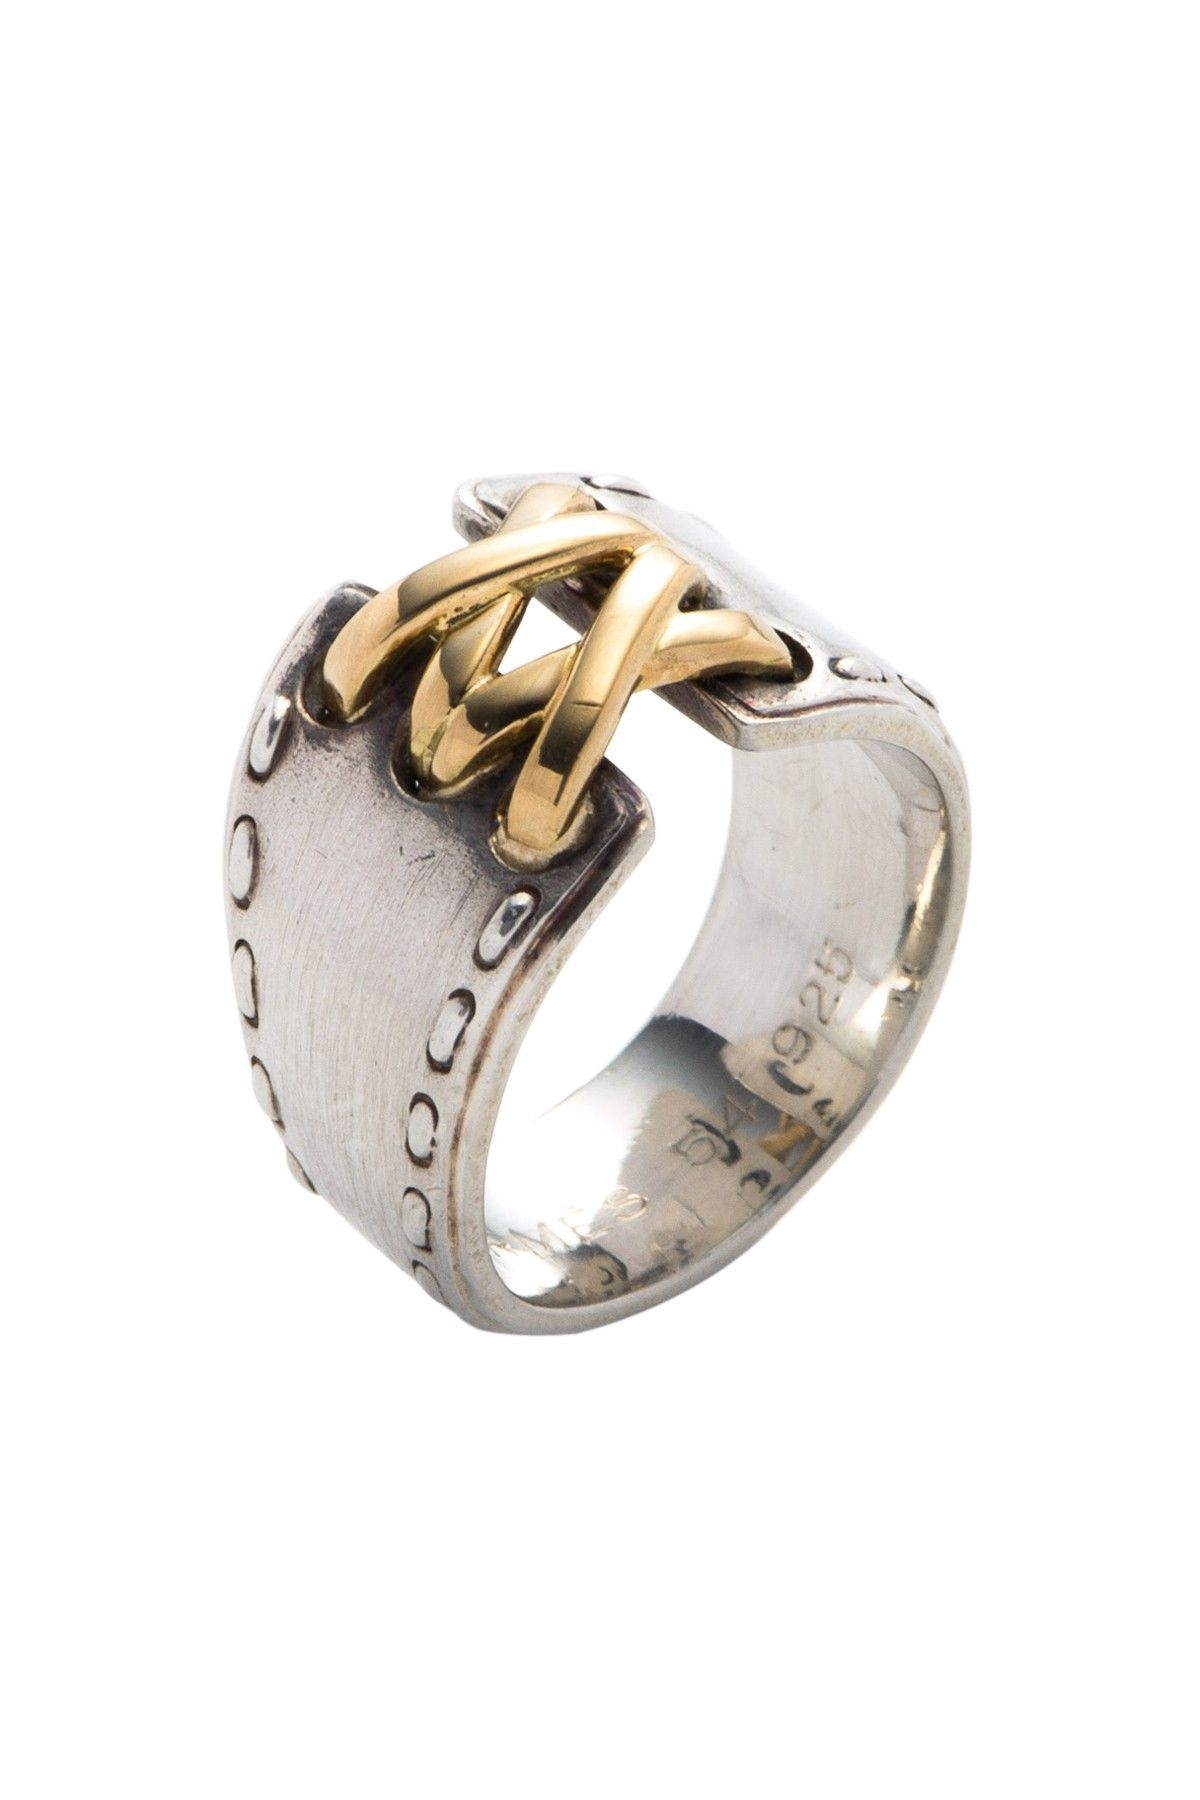 Vintage Hermes Two Tone Ring Size 6 5 336 249 Hautelook Item Is Pre Owned Sterling Silver Stitched Des Jewelry Jewelry Accessories Beautiful Jewelry